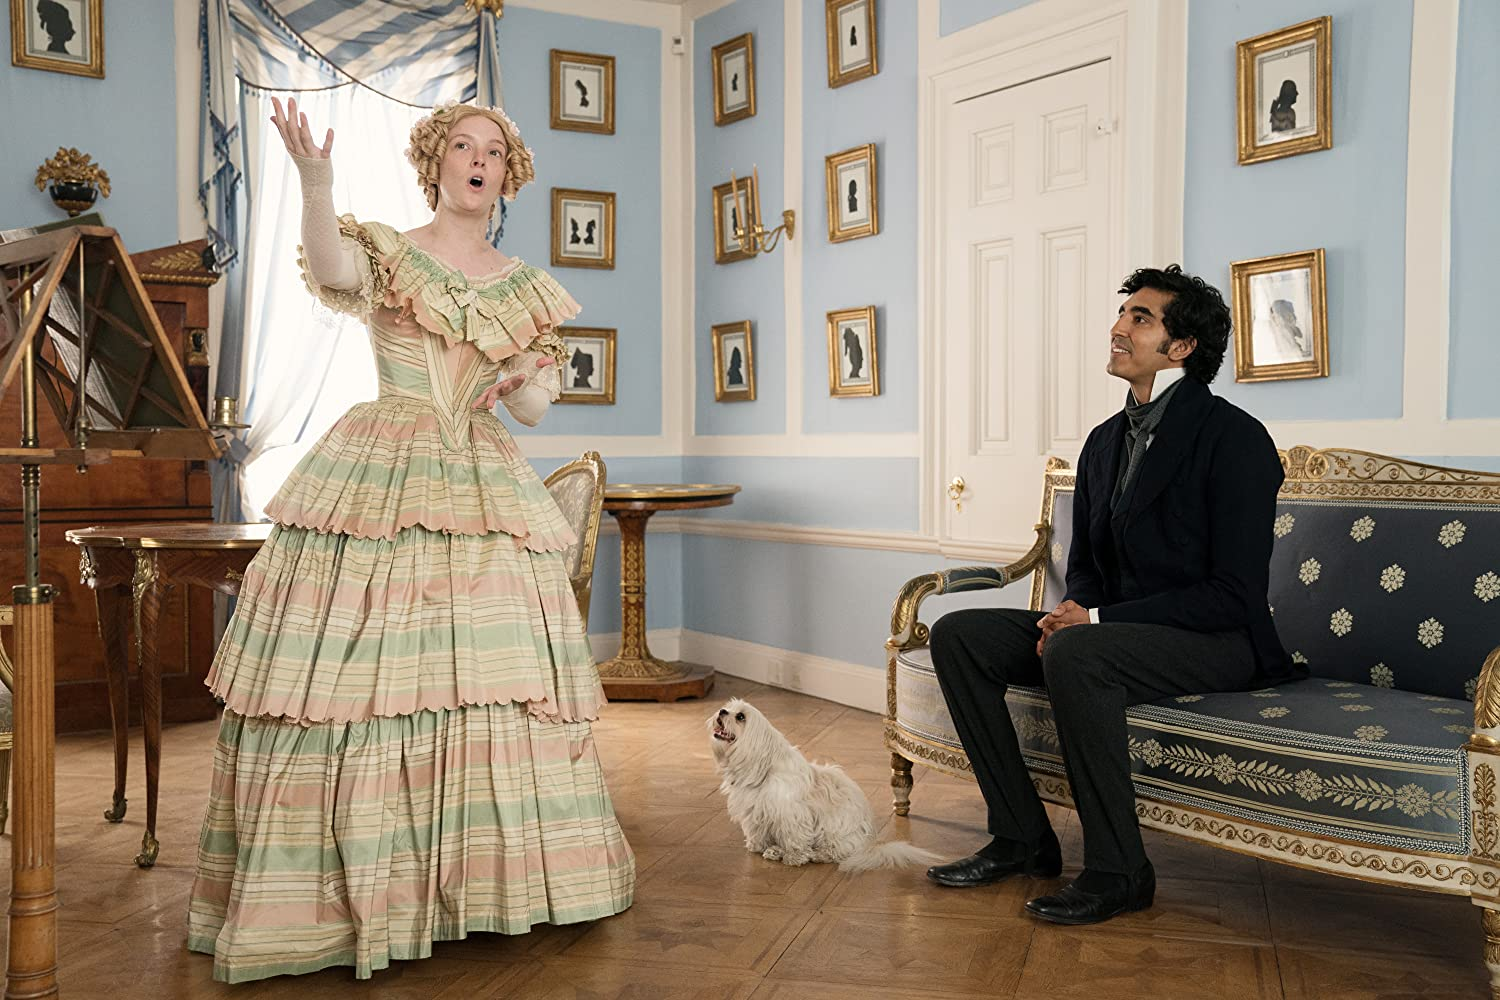 Dev Patel and Morfydd Clark in The Personal History of David Copperfield (2019)